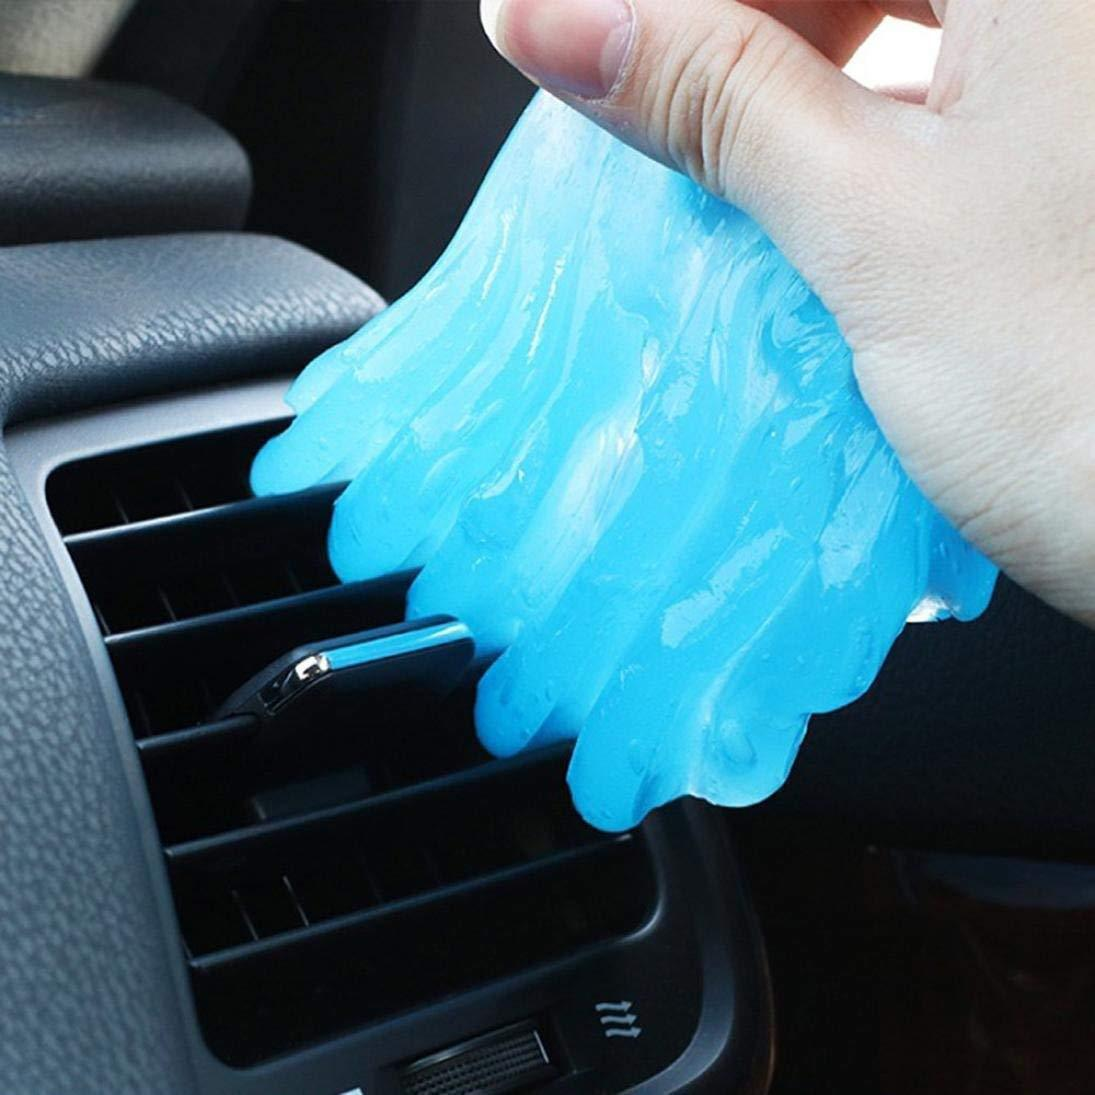 Magic Slime Cleaner - Magic Slime Reusable Keyboard Cleaner - PropelGear